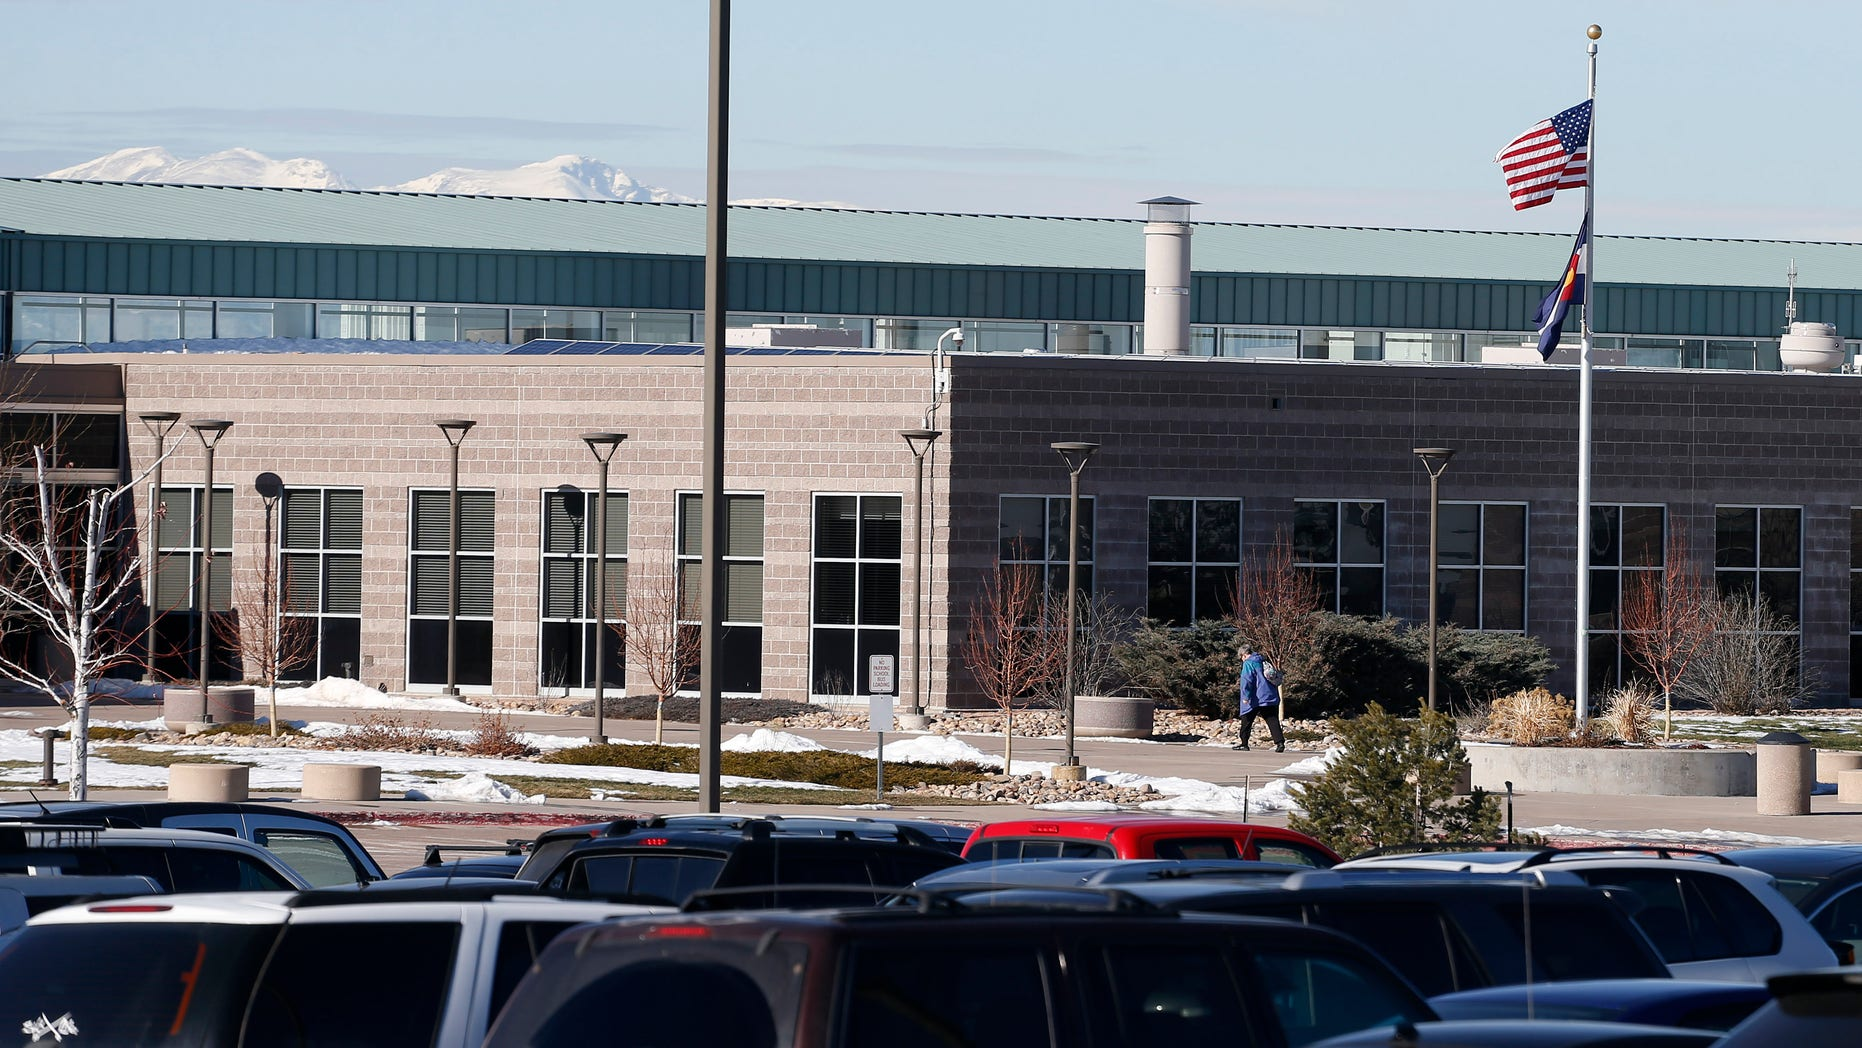 Mountain Vista High School is located in Highlands Ranch, Colo.